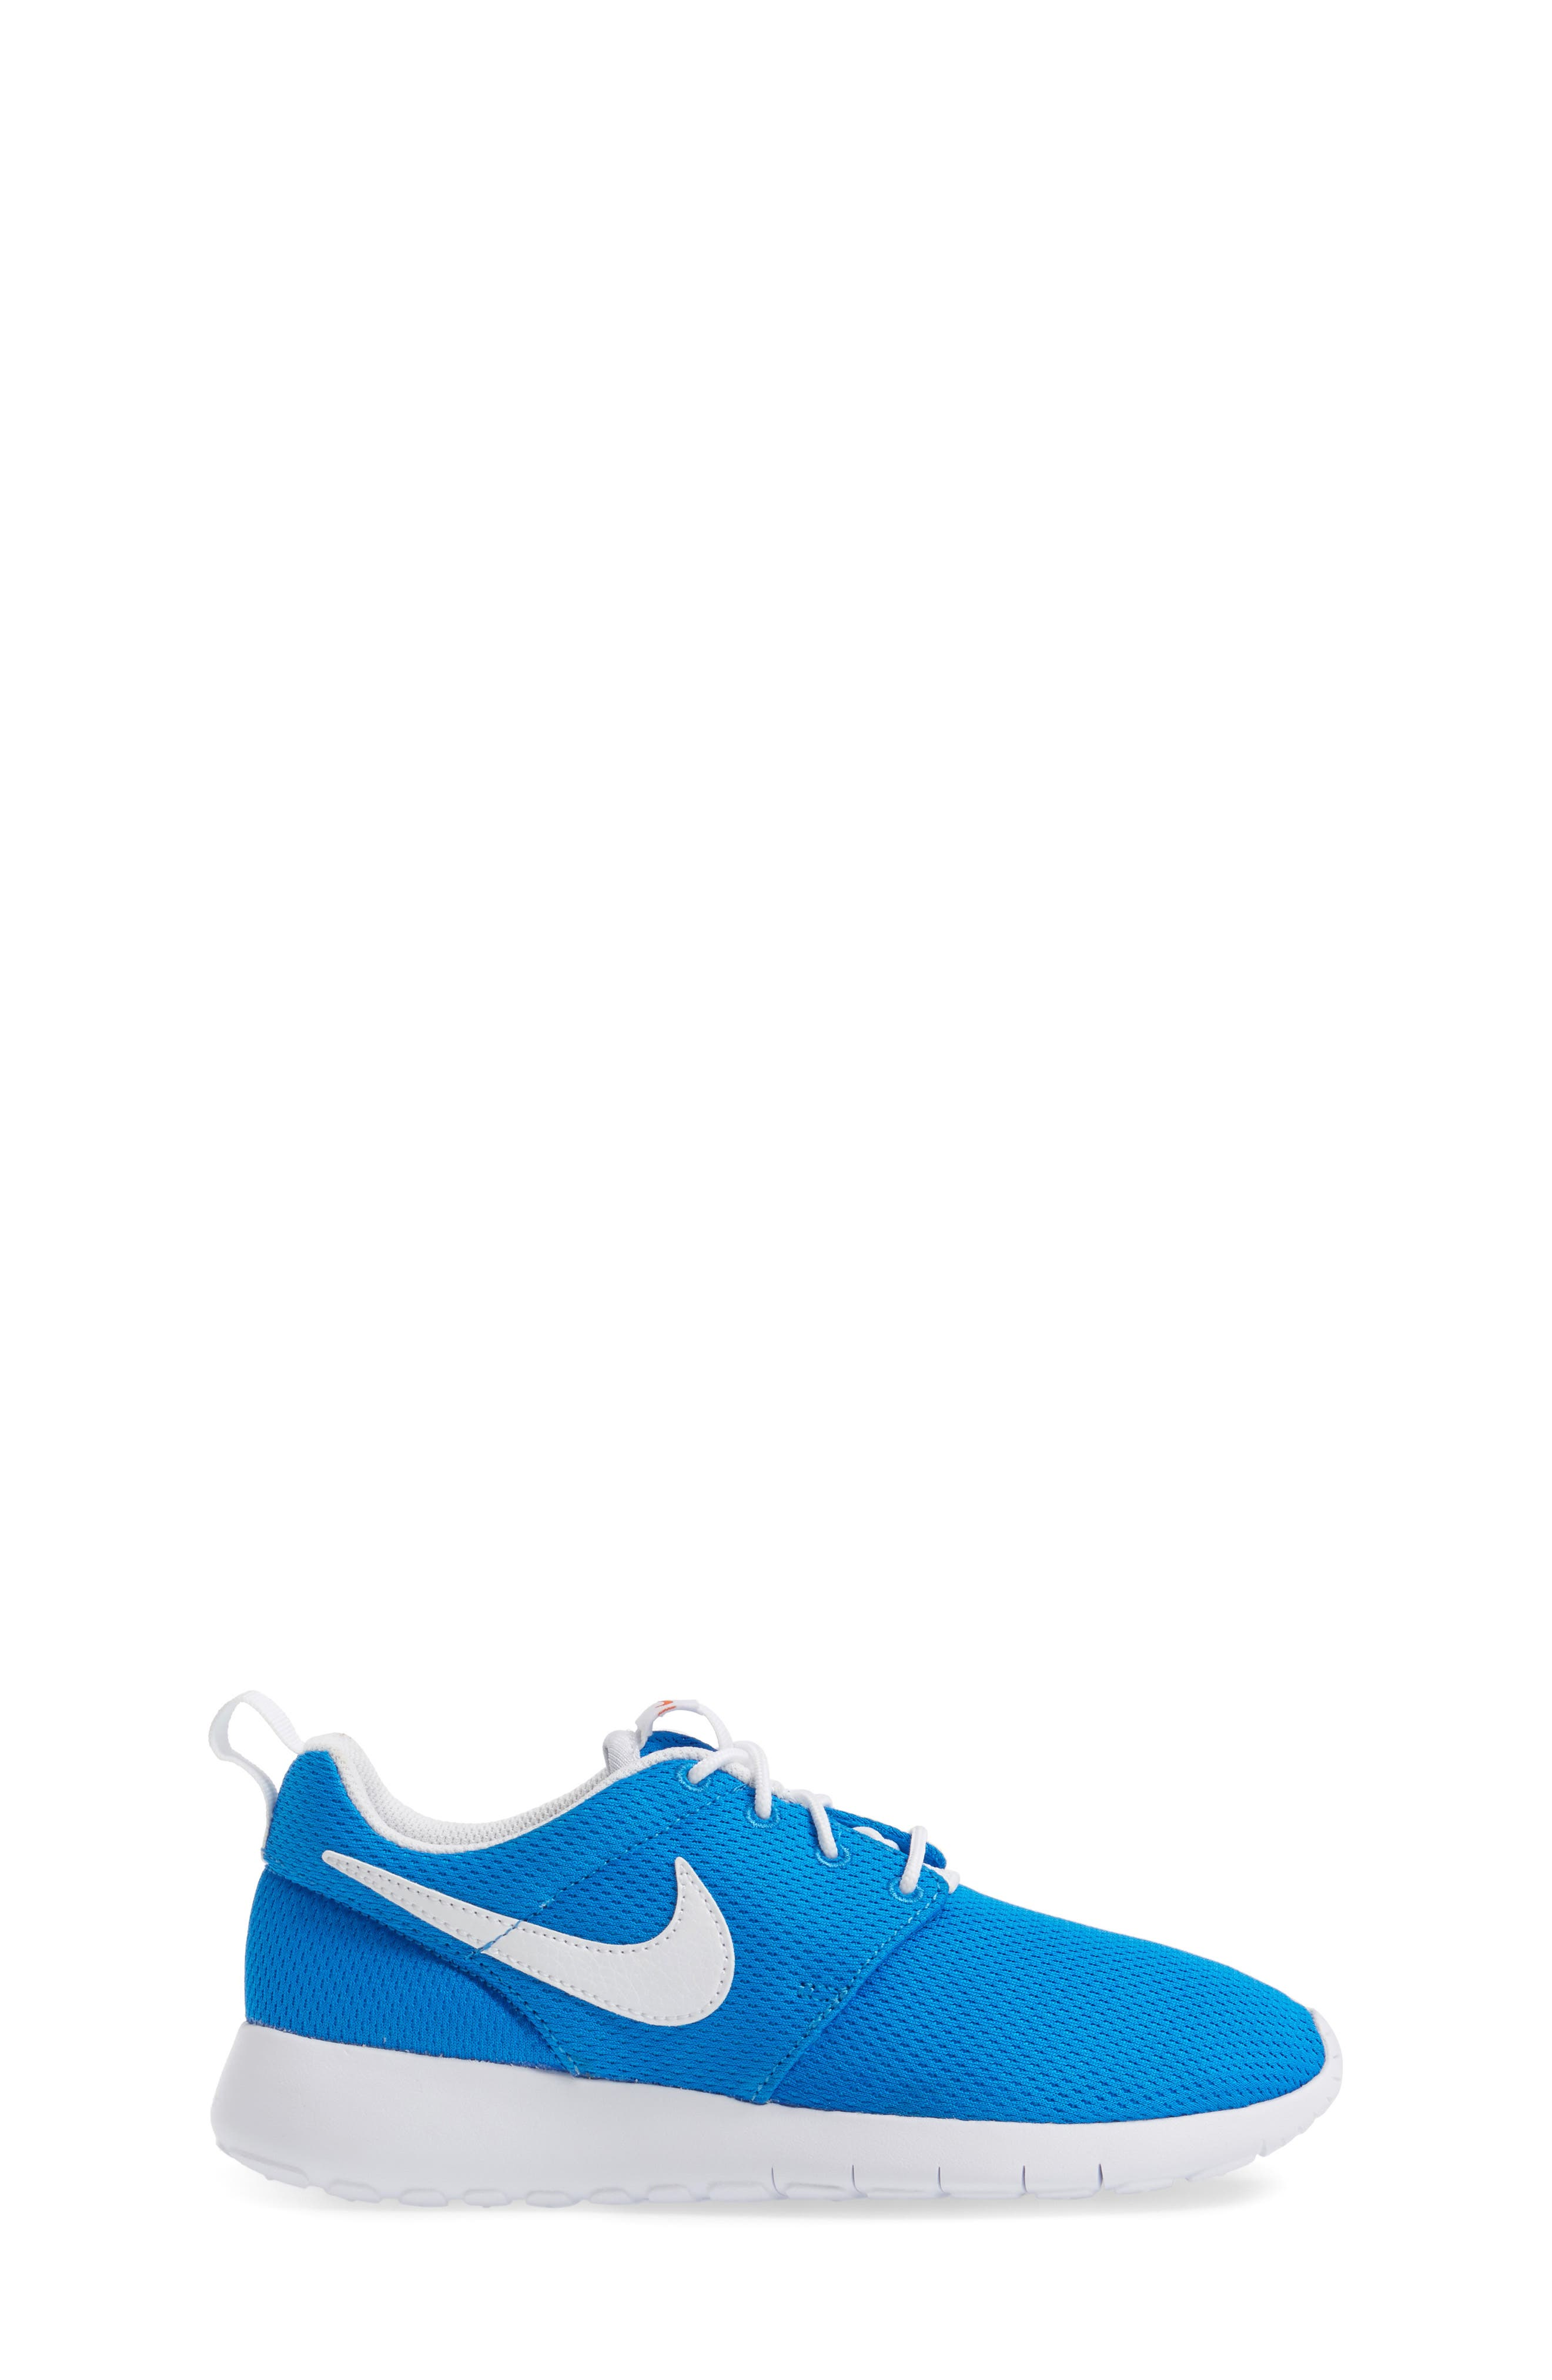 'Roshe Run' Sneaker,                             Alternate thumbnail 139, color,